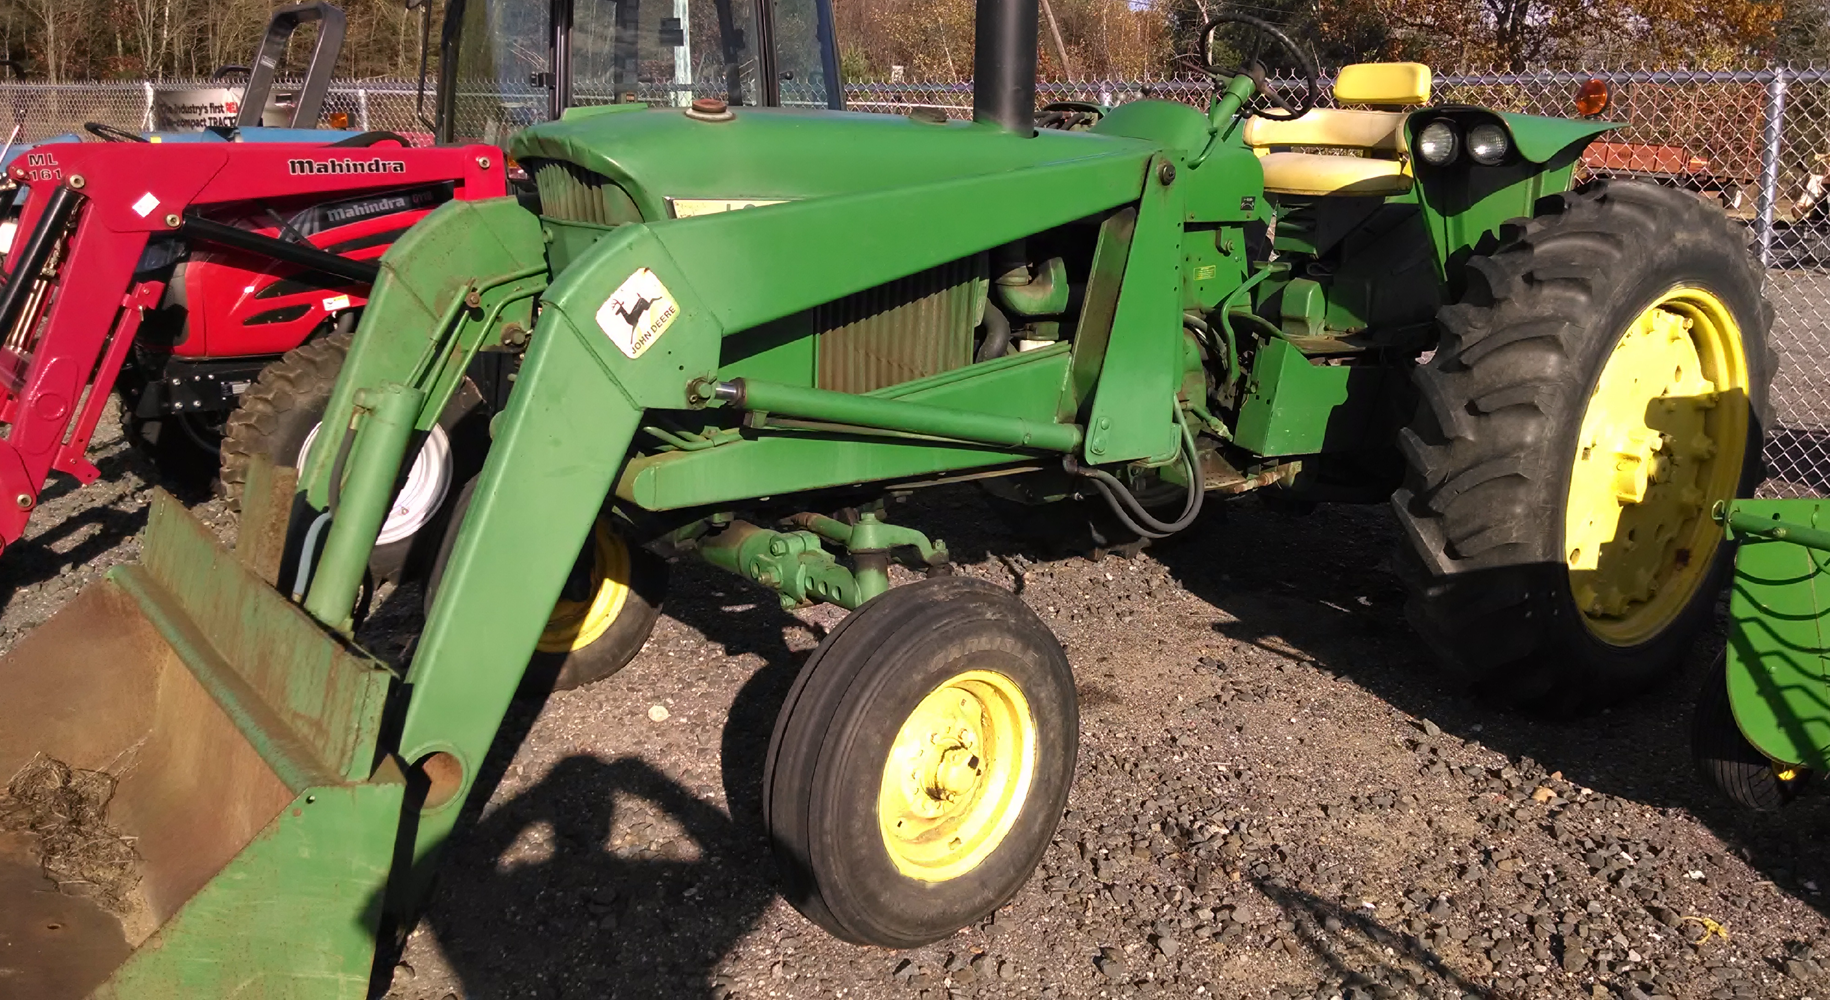 John deere 3020 tractor with loader tractor has 5 600 hrs engine has